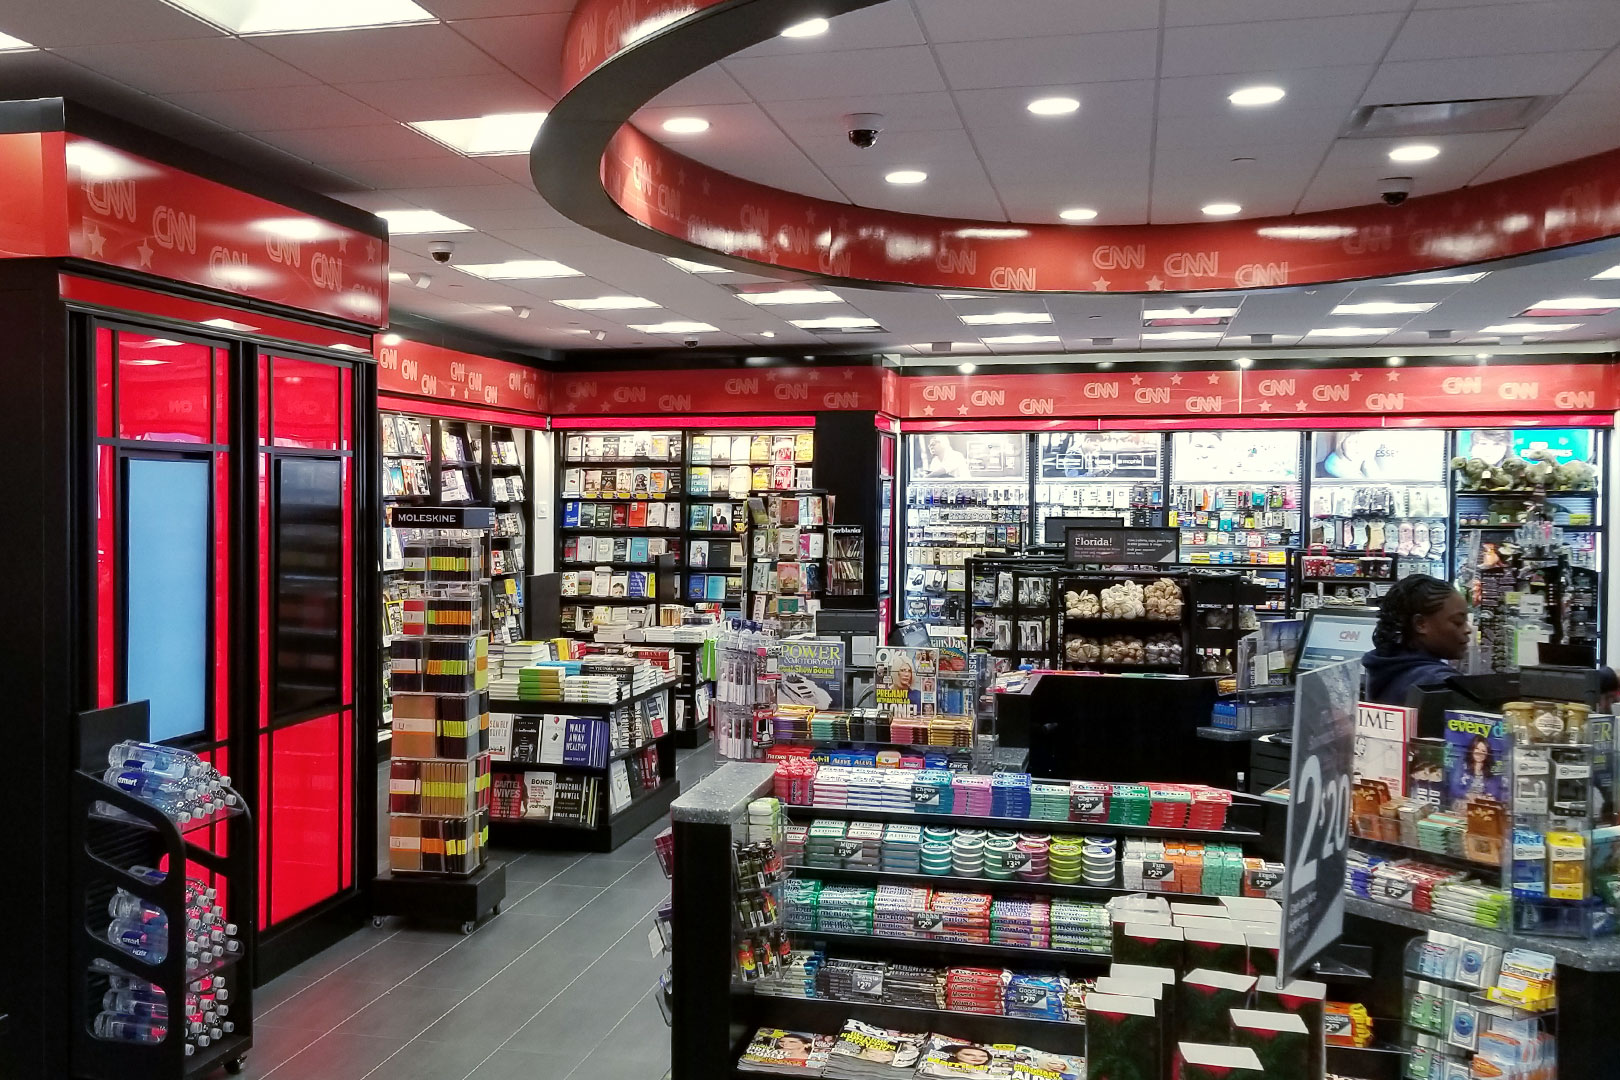 CNN Newsstand Retail Space